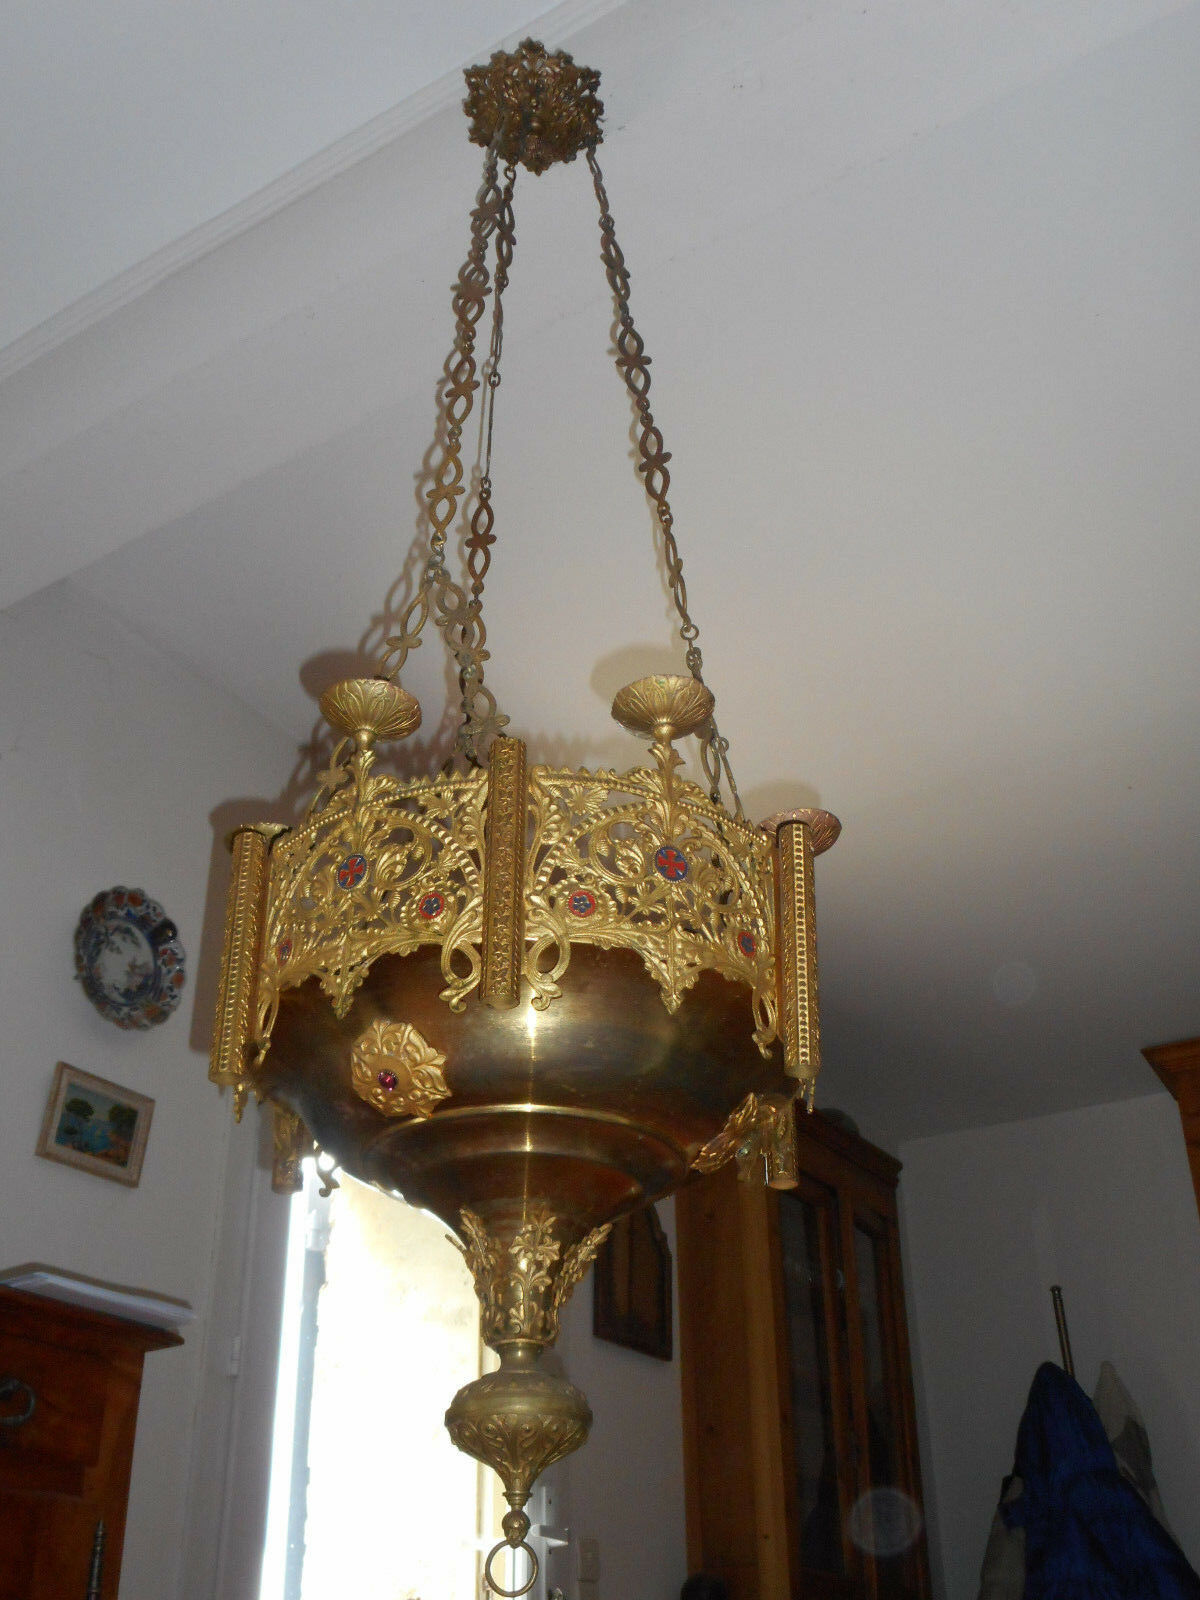 Antique French Gothic Bronze Gilt Sanctuary Lamp Chandelier Lantern. h:55 inches